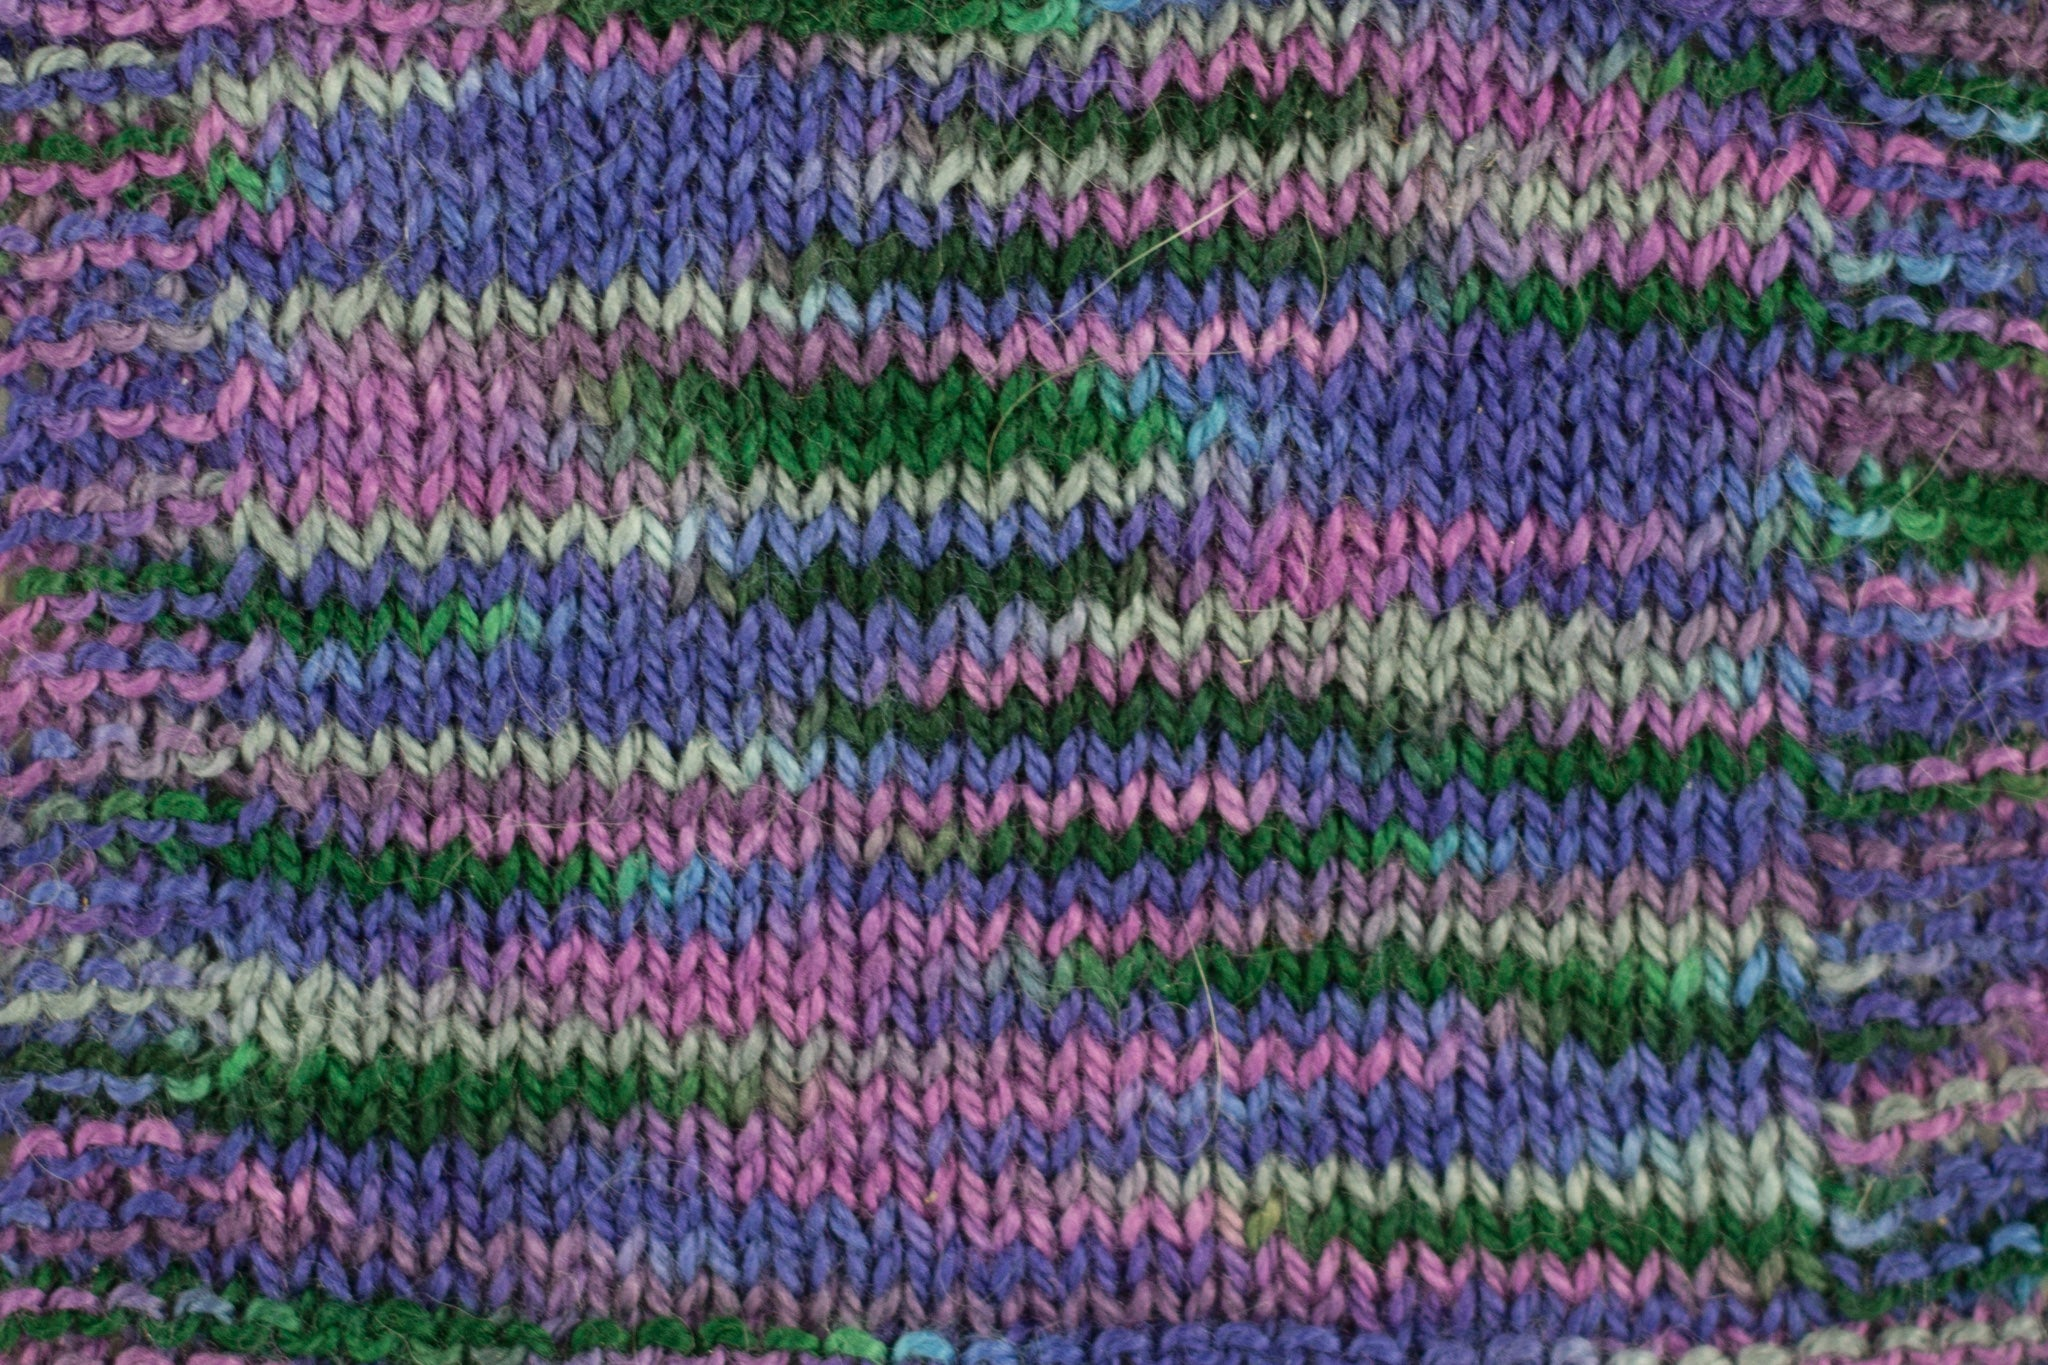 Organic & Fair Trade Cotton Yarn- purples, grey, and green swatch